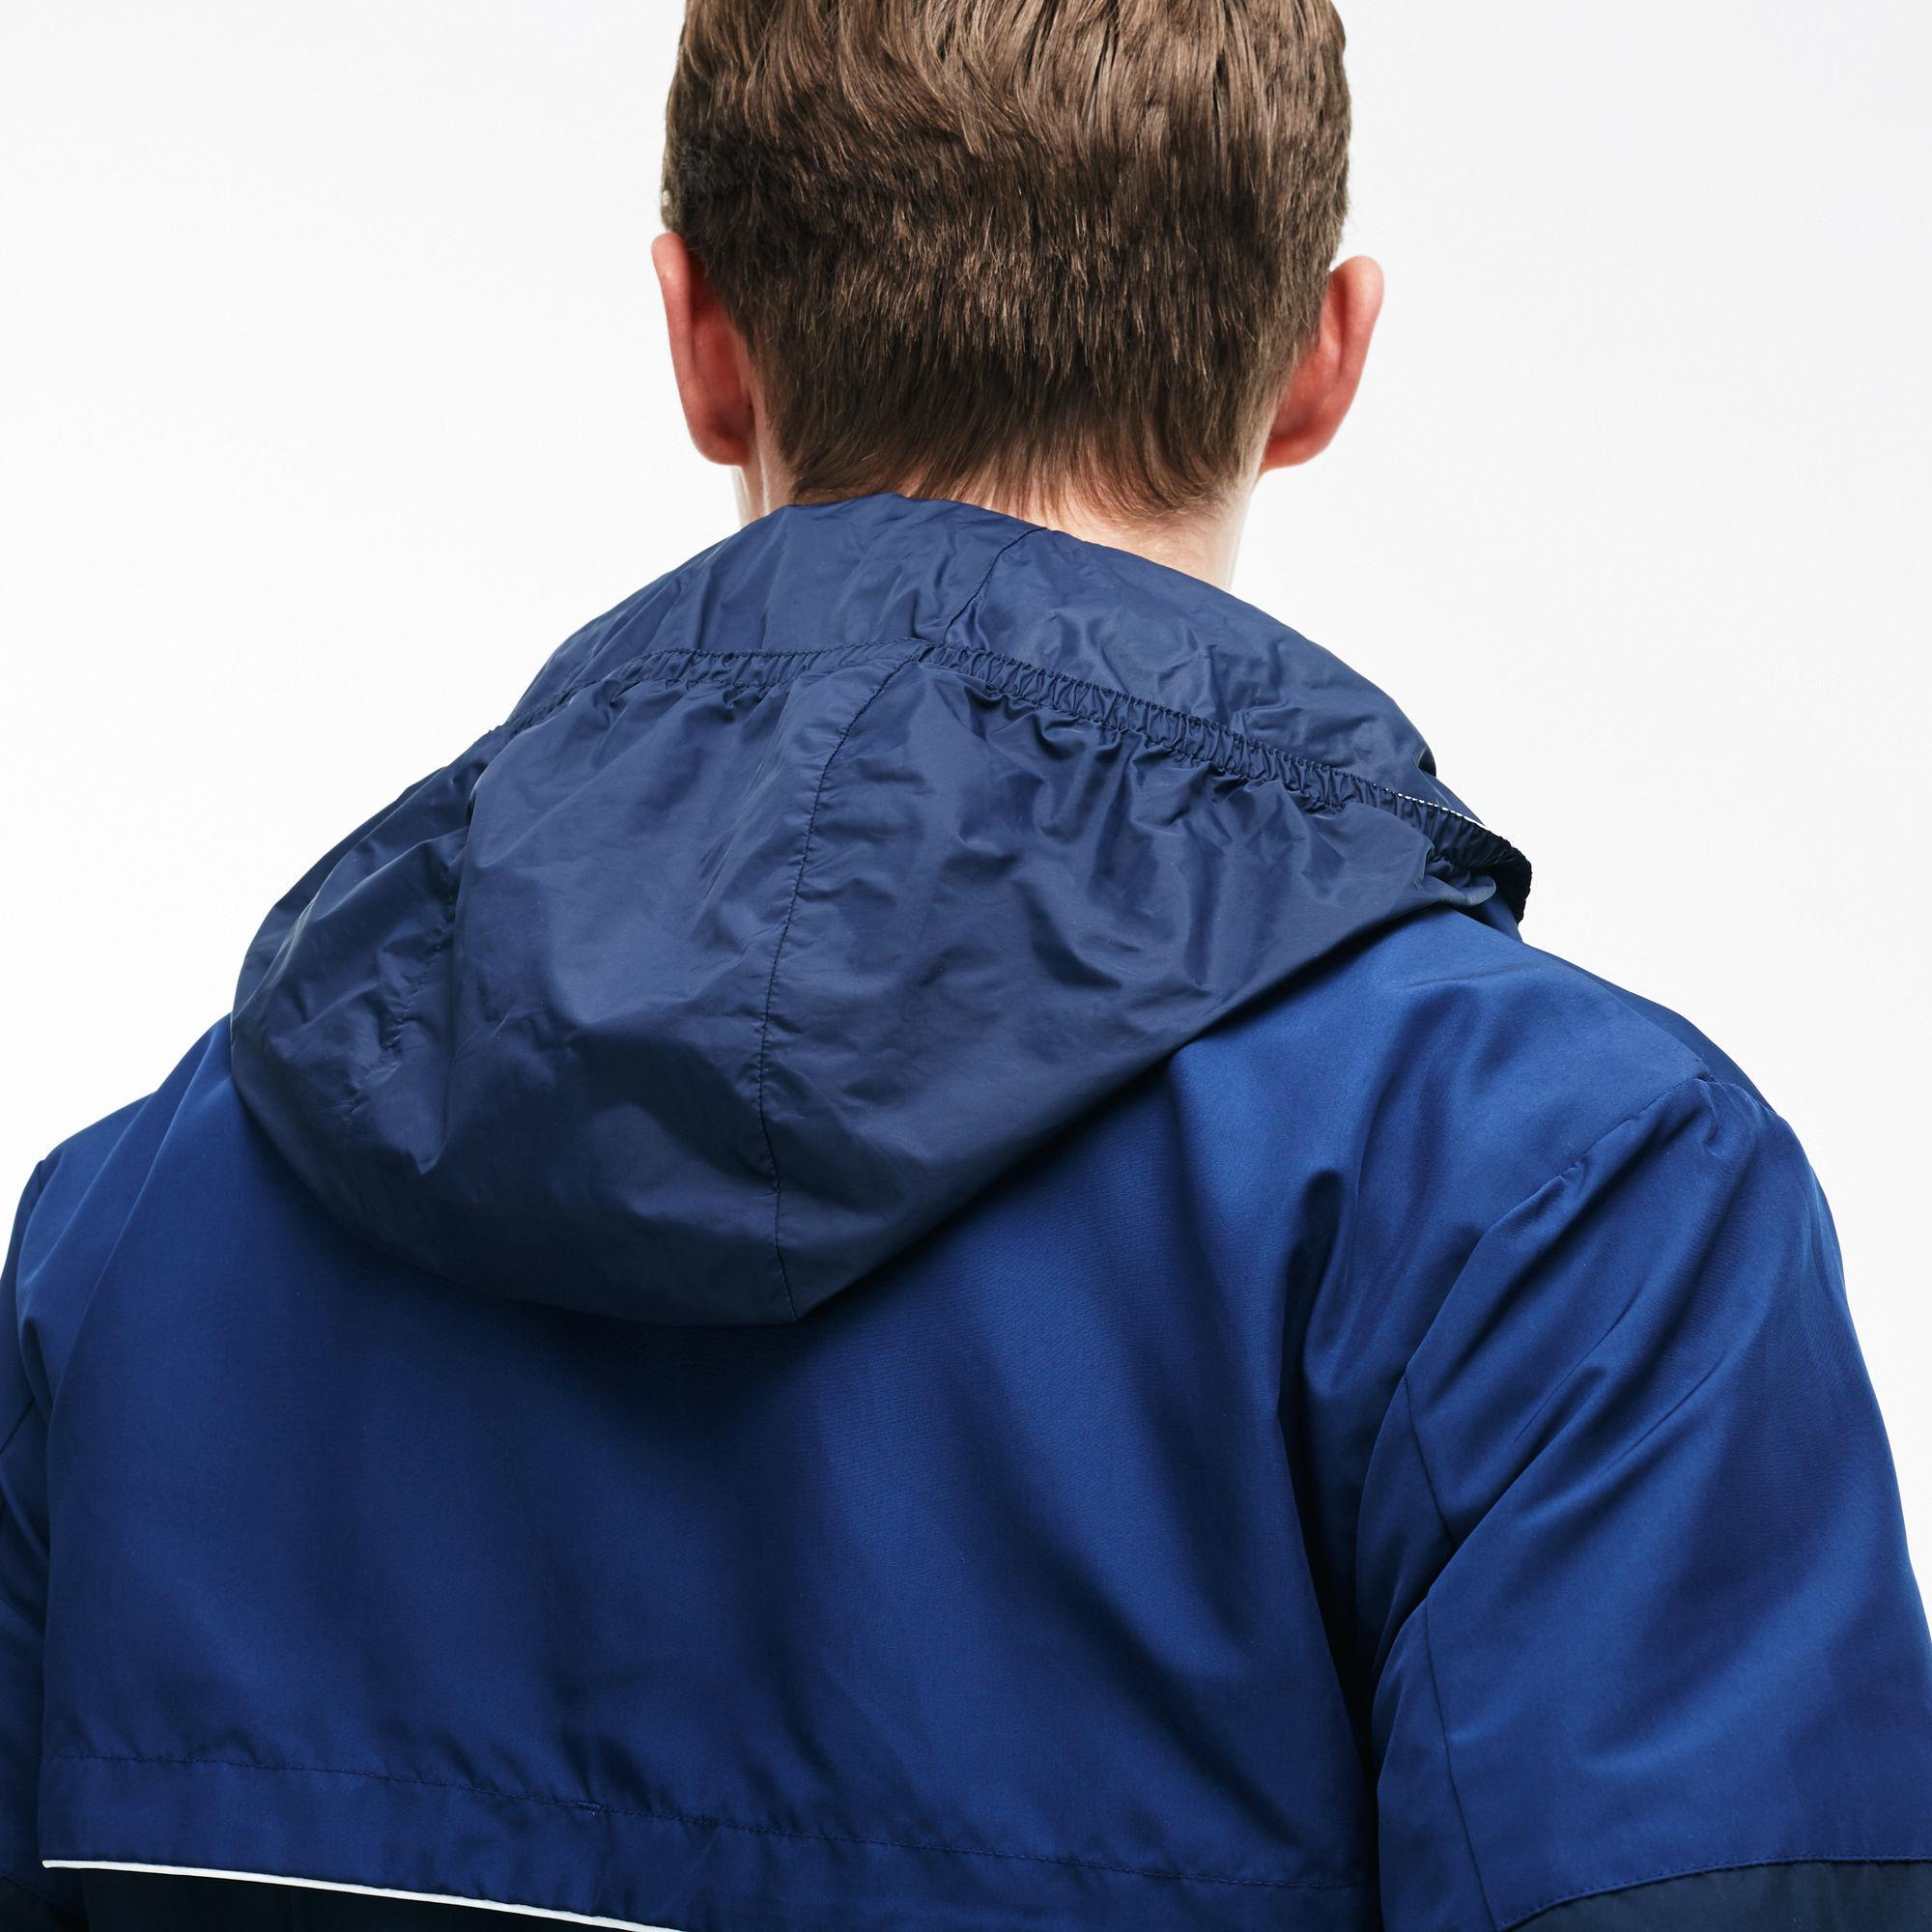 73bbcd459 Lyst - Lacoste Unicolor Nylon Contrasting Accents Hooded Zippered ...